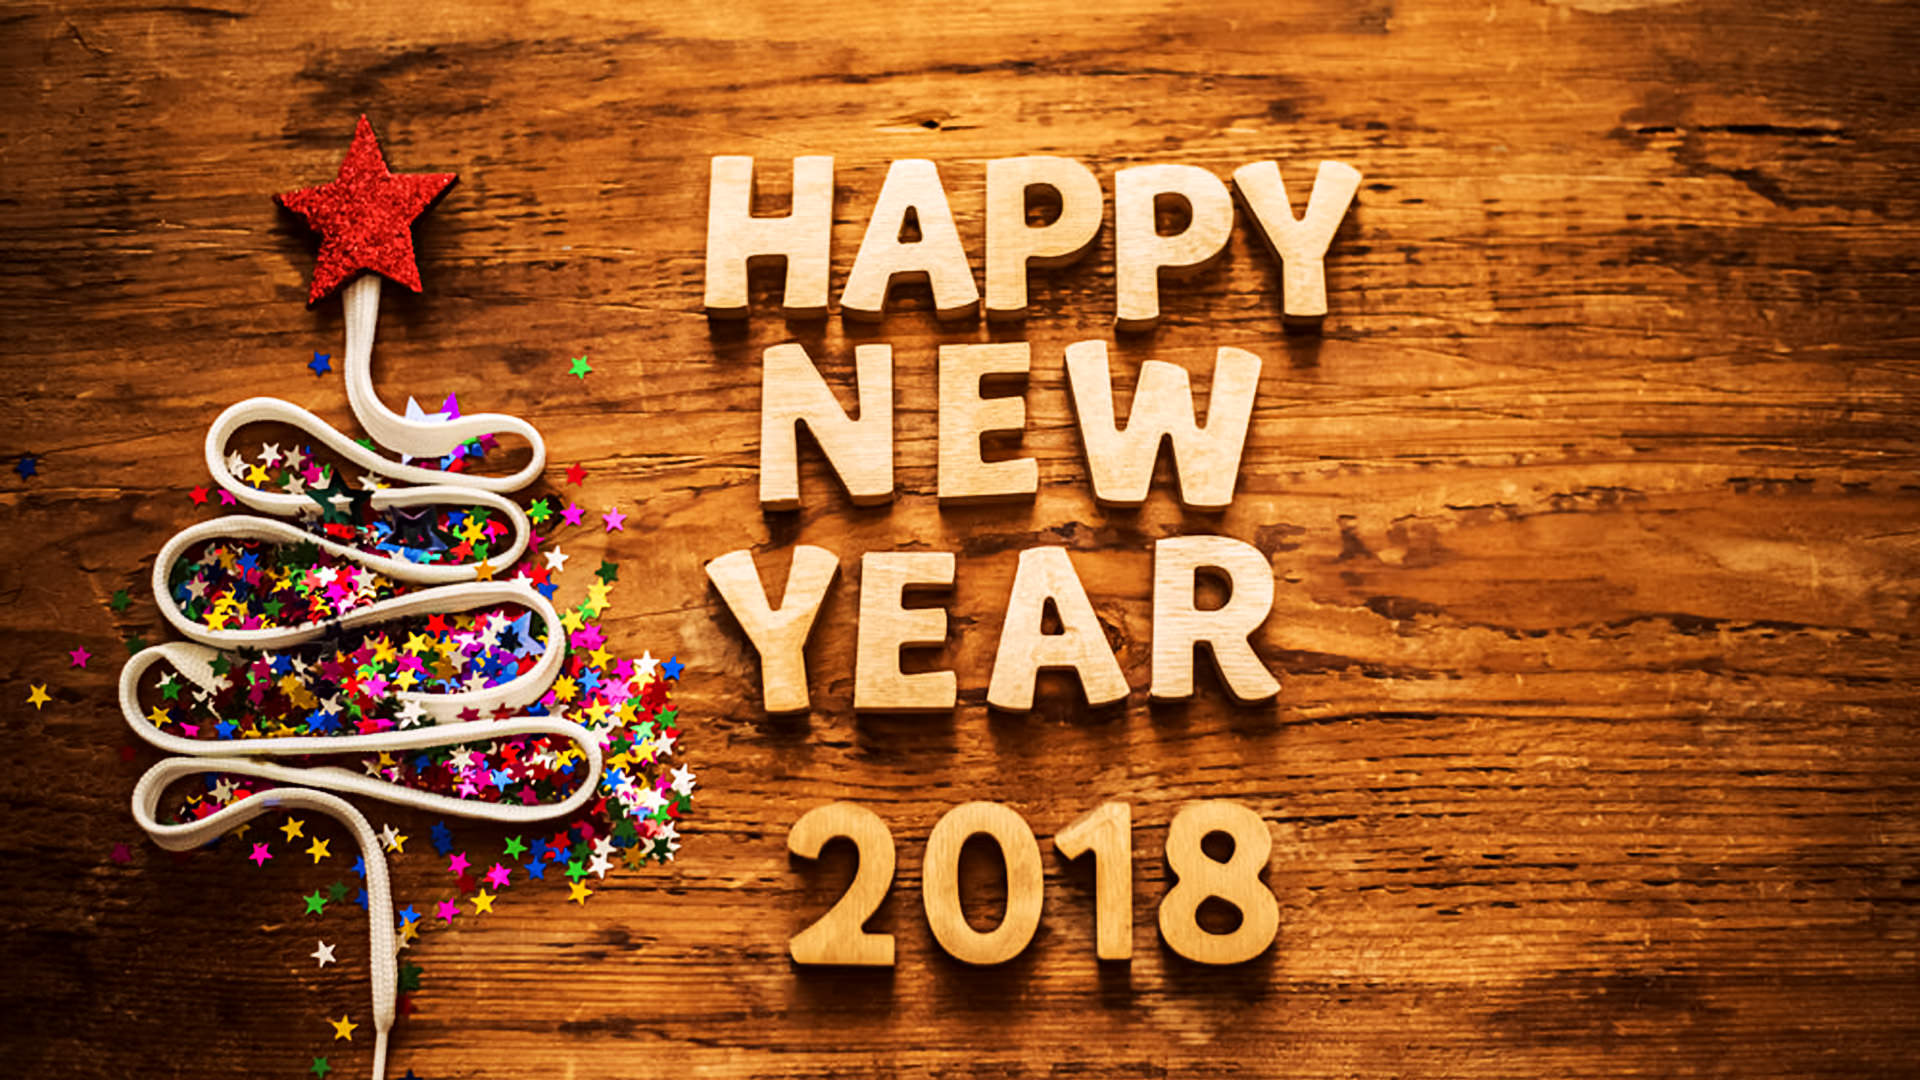 Free Download Special Happy New Year 2018 Wallpaper Hd Greetings 1920x1080 For Your Desktop Mobile Tablet Explore 90 Happy Chinese New Year 2018 Wallpapers Happy Chinese New Year 2018